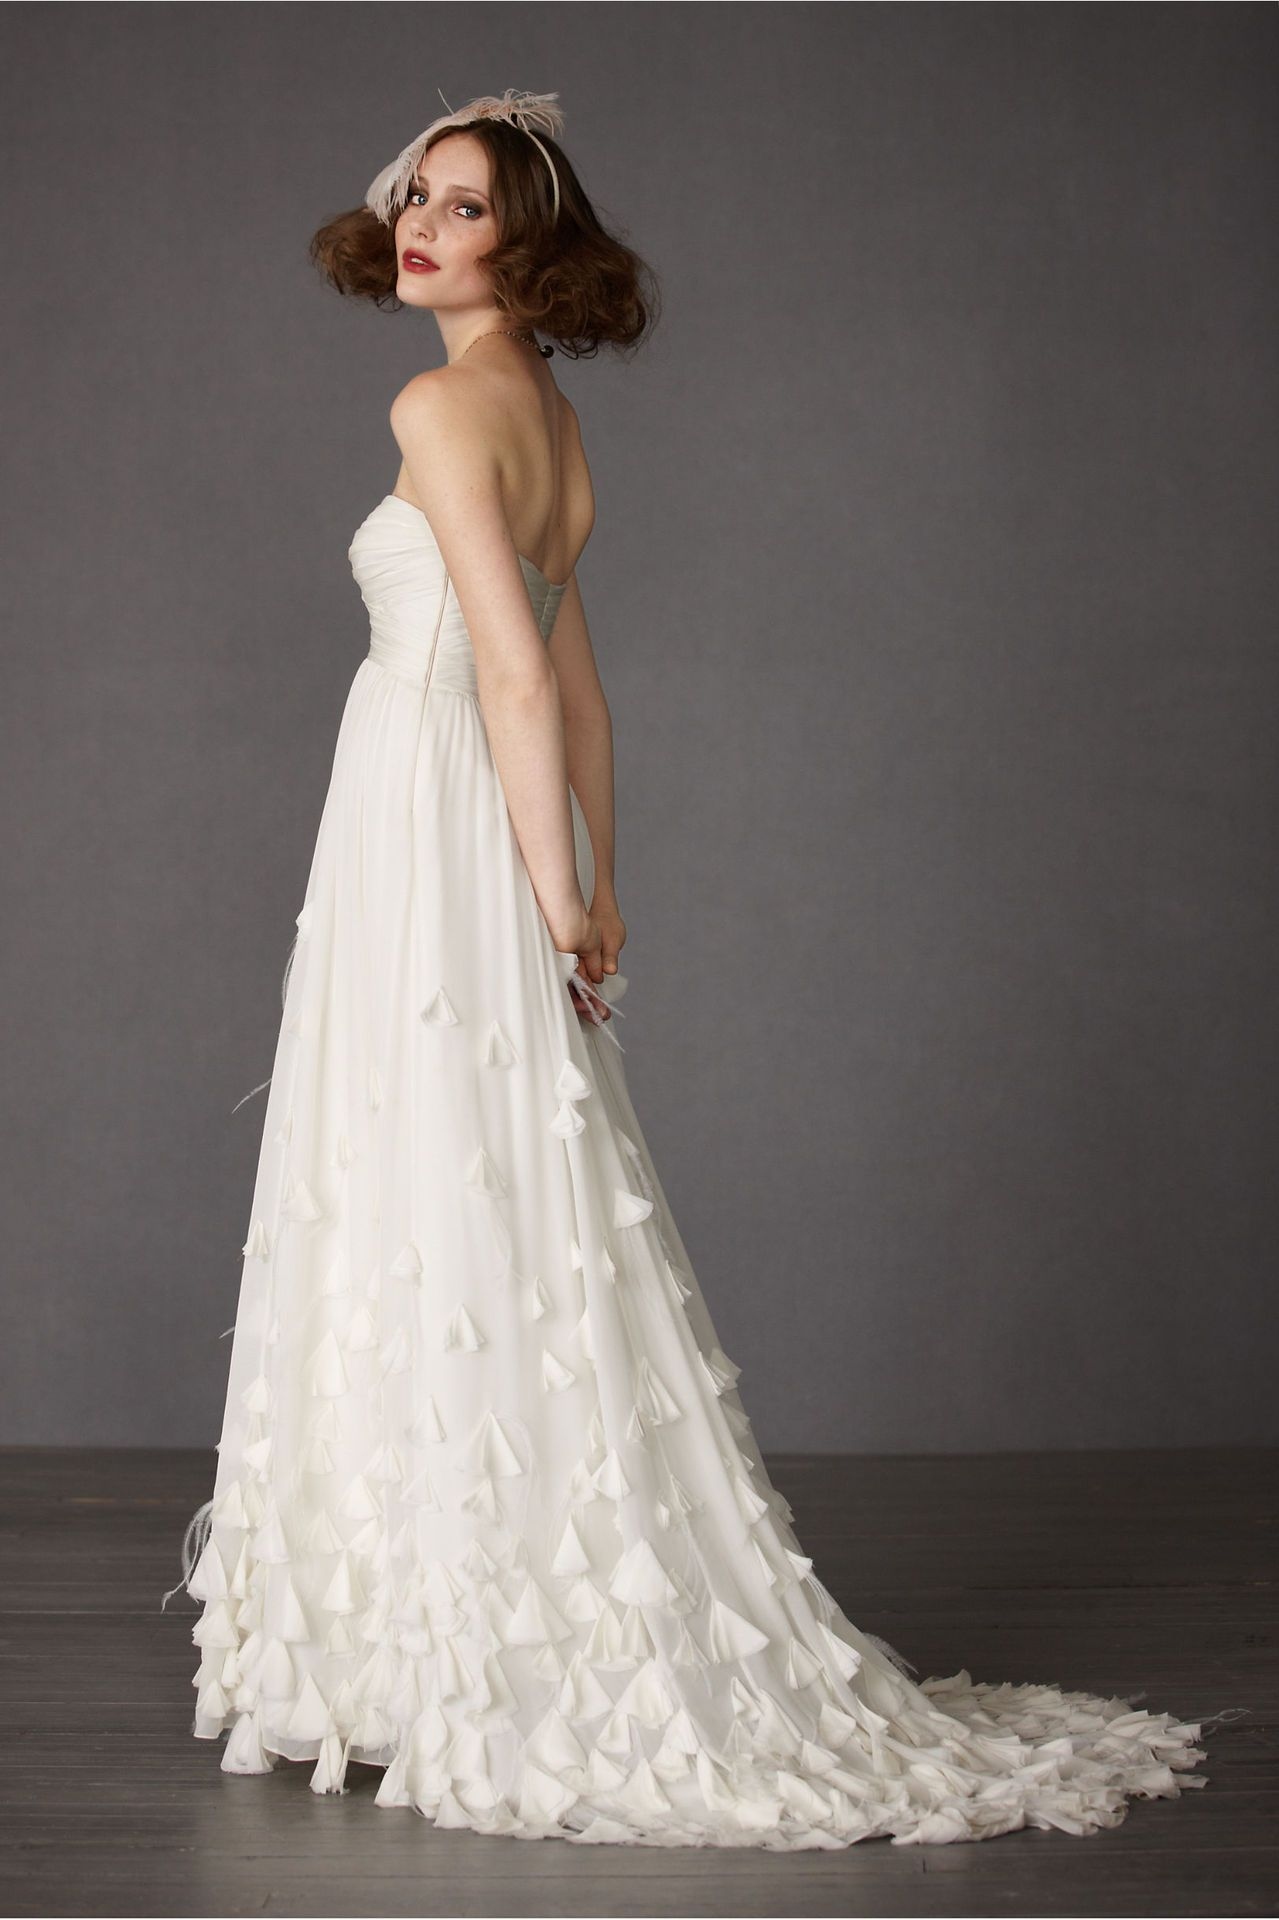 Cheap 2013 Strapless Sweetheart Wedding Dress With Slight Train And Rich Soft Flower On Skirt Sale Buy